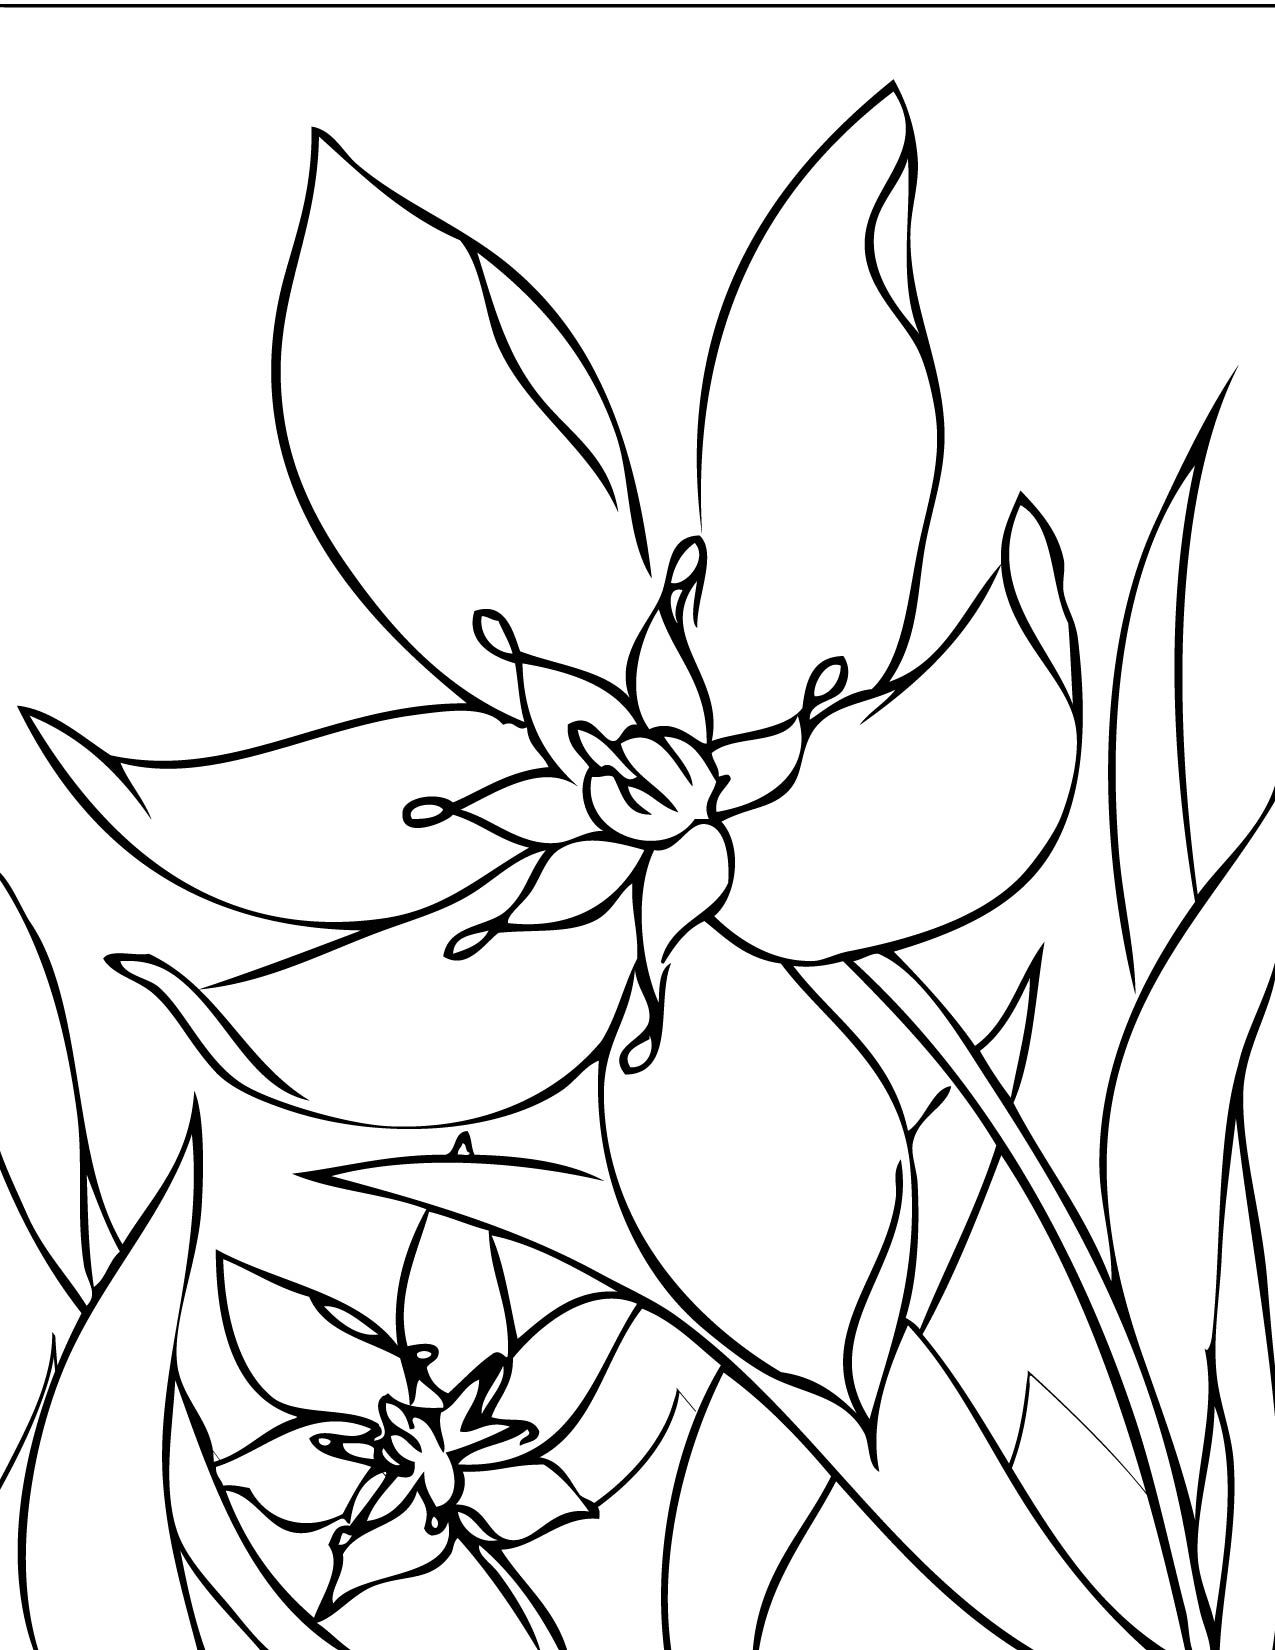 Colouring in sheets of flowers - Flower Page Printable Coloring Sheets Print This Page Spring Flowers Coloring Pages Coloring